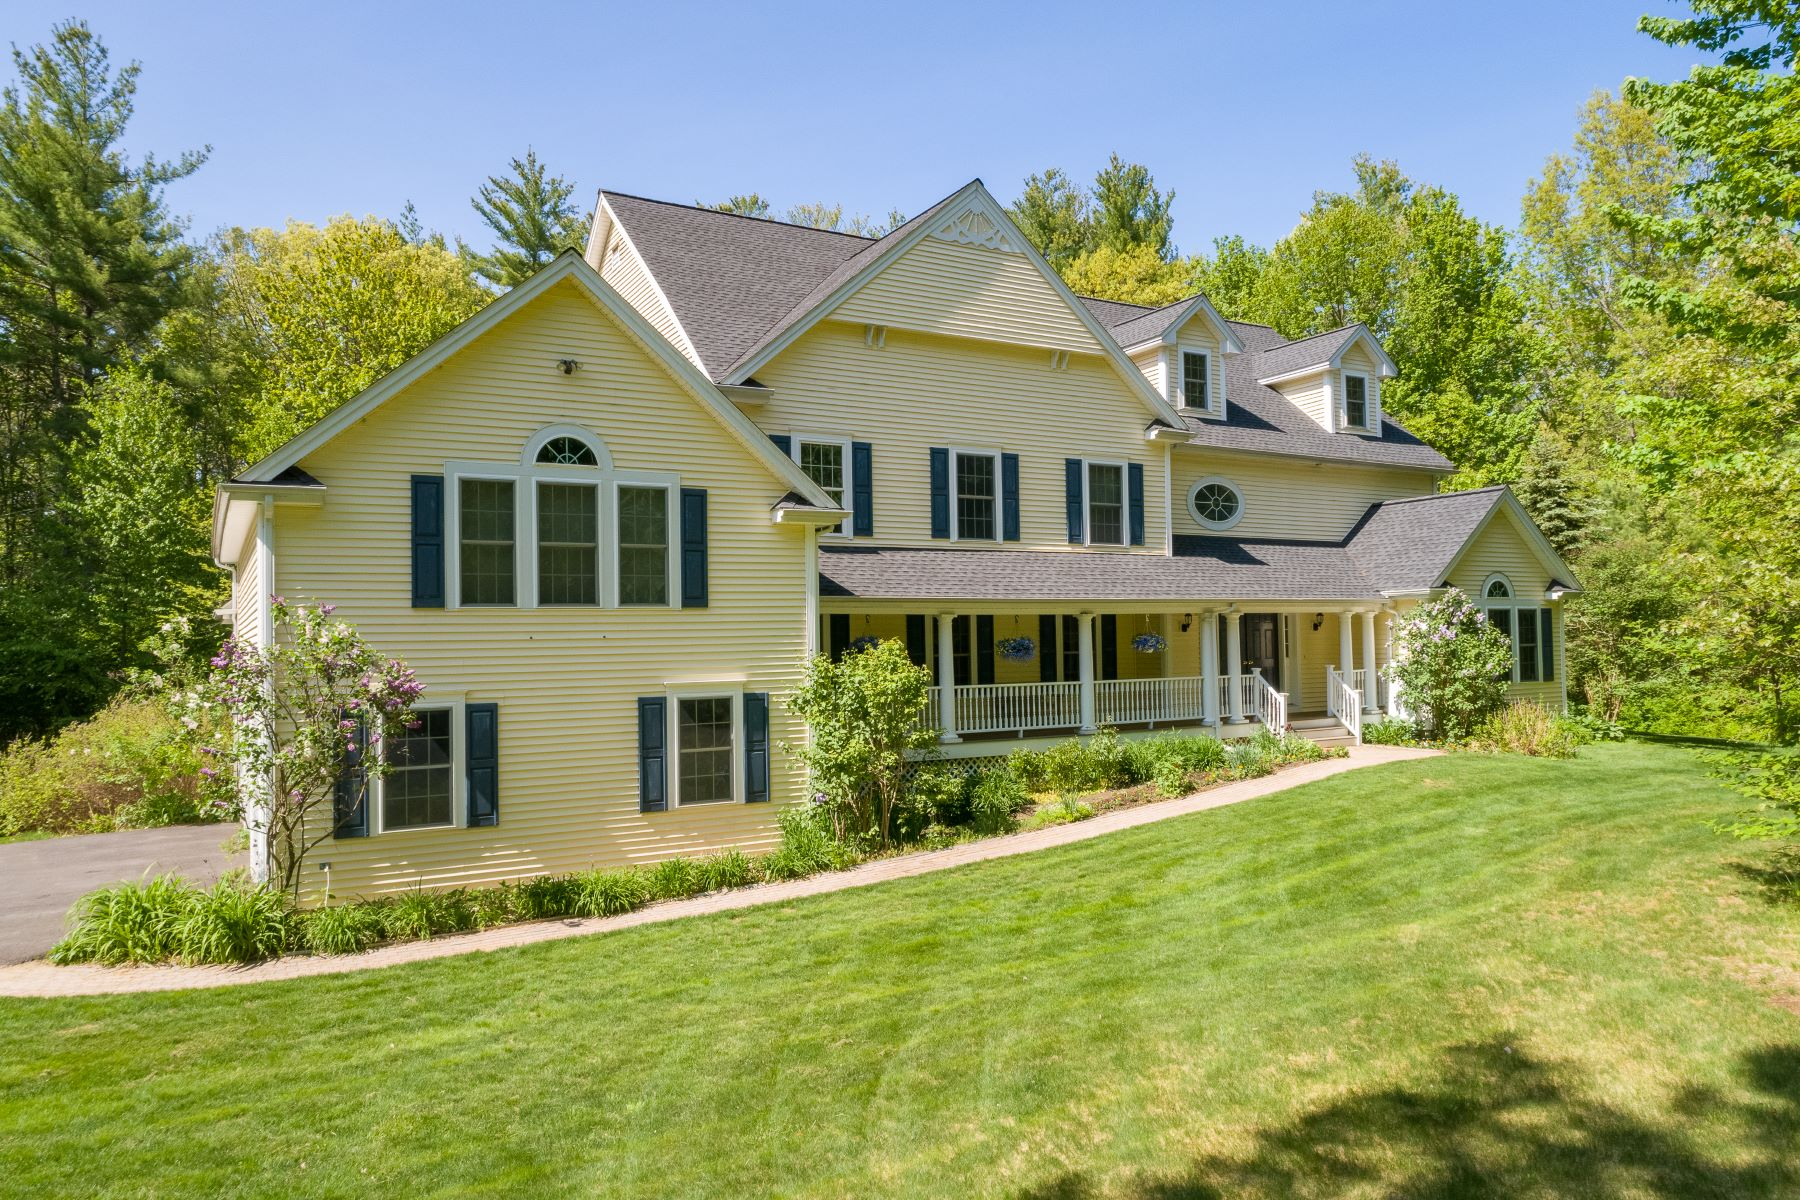 Single Family Homes for Sale at 28 Caverno Drive Lee, New Hampshire 03861 United States